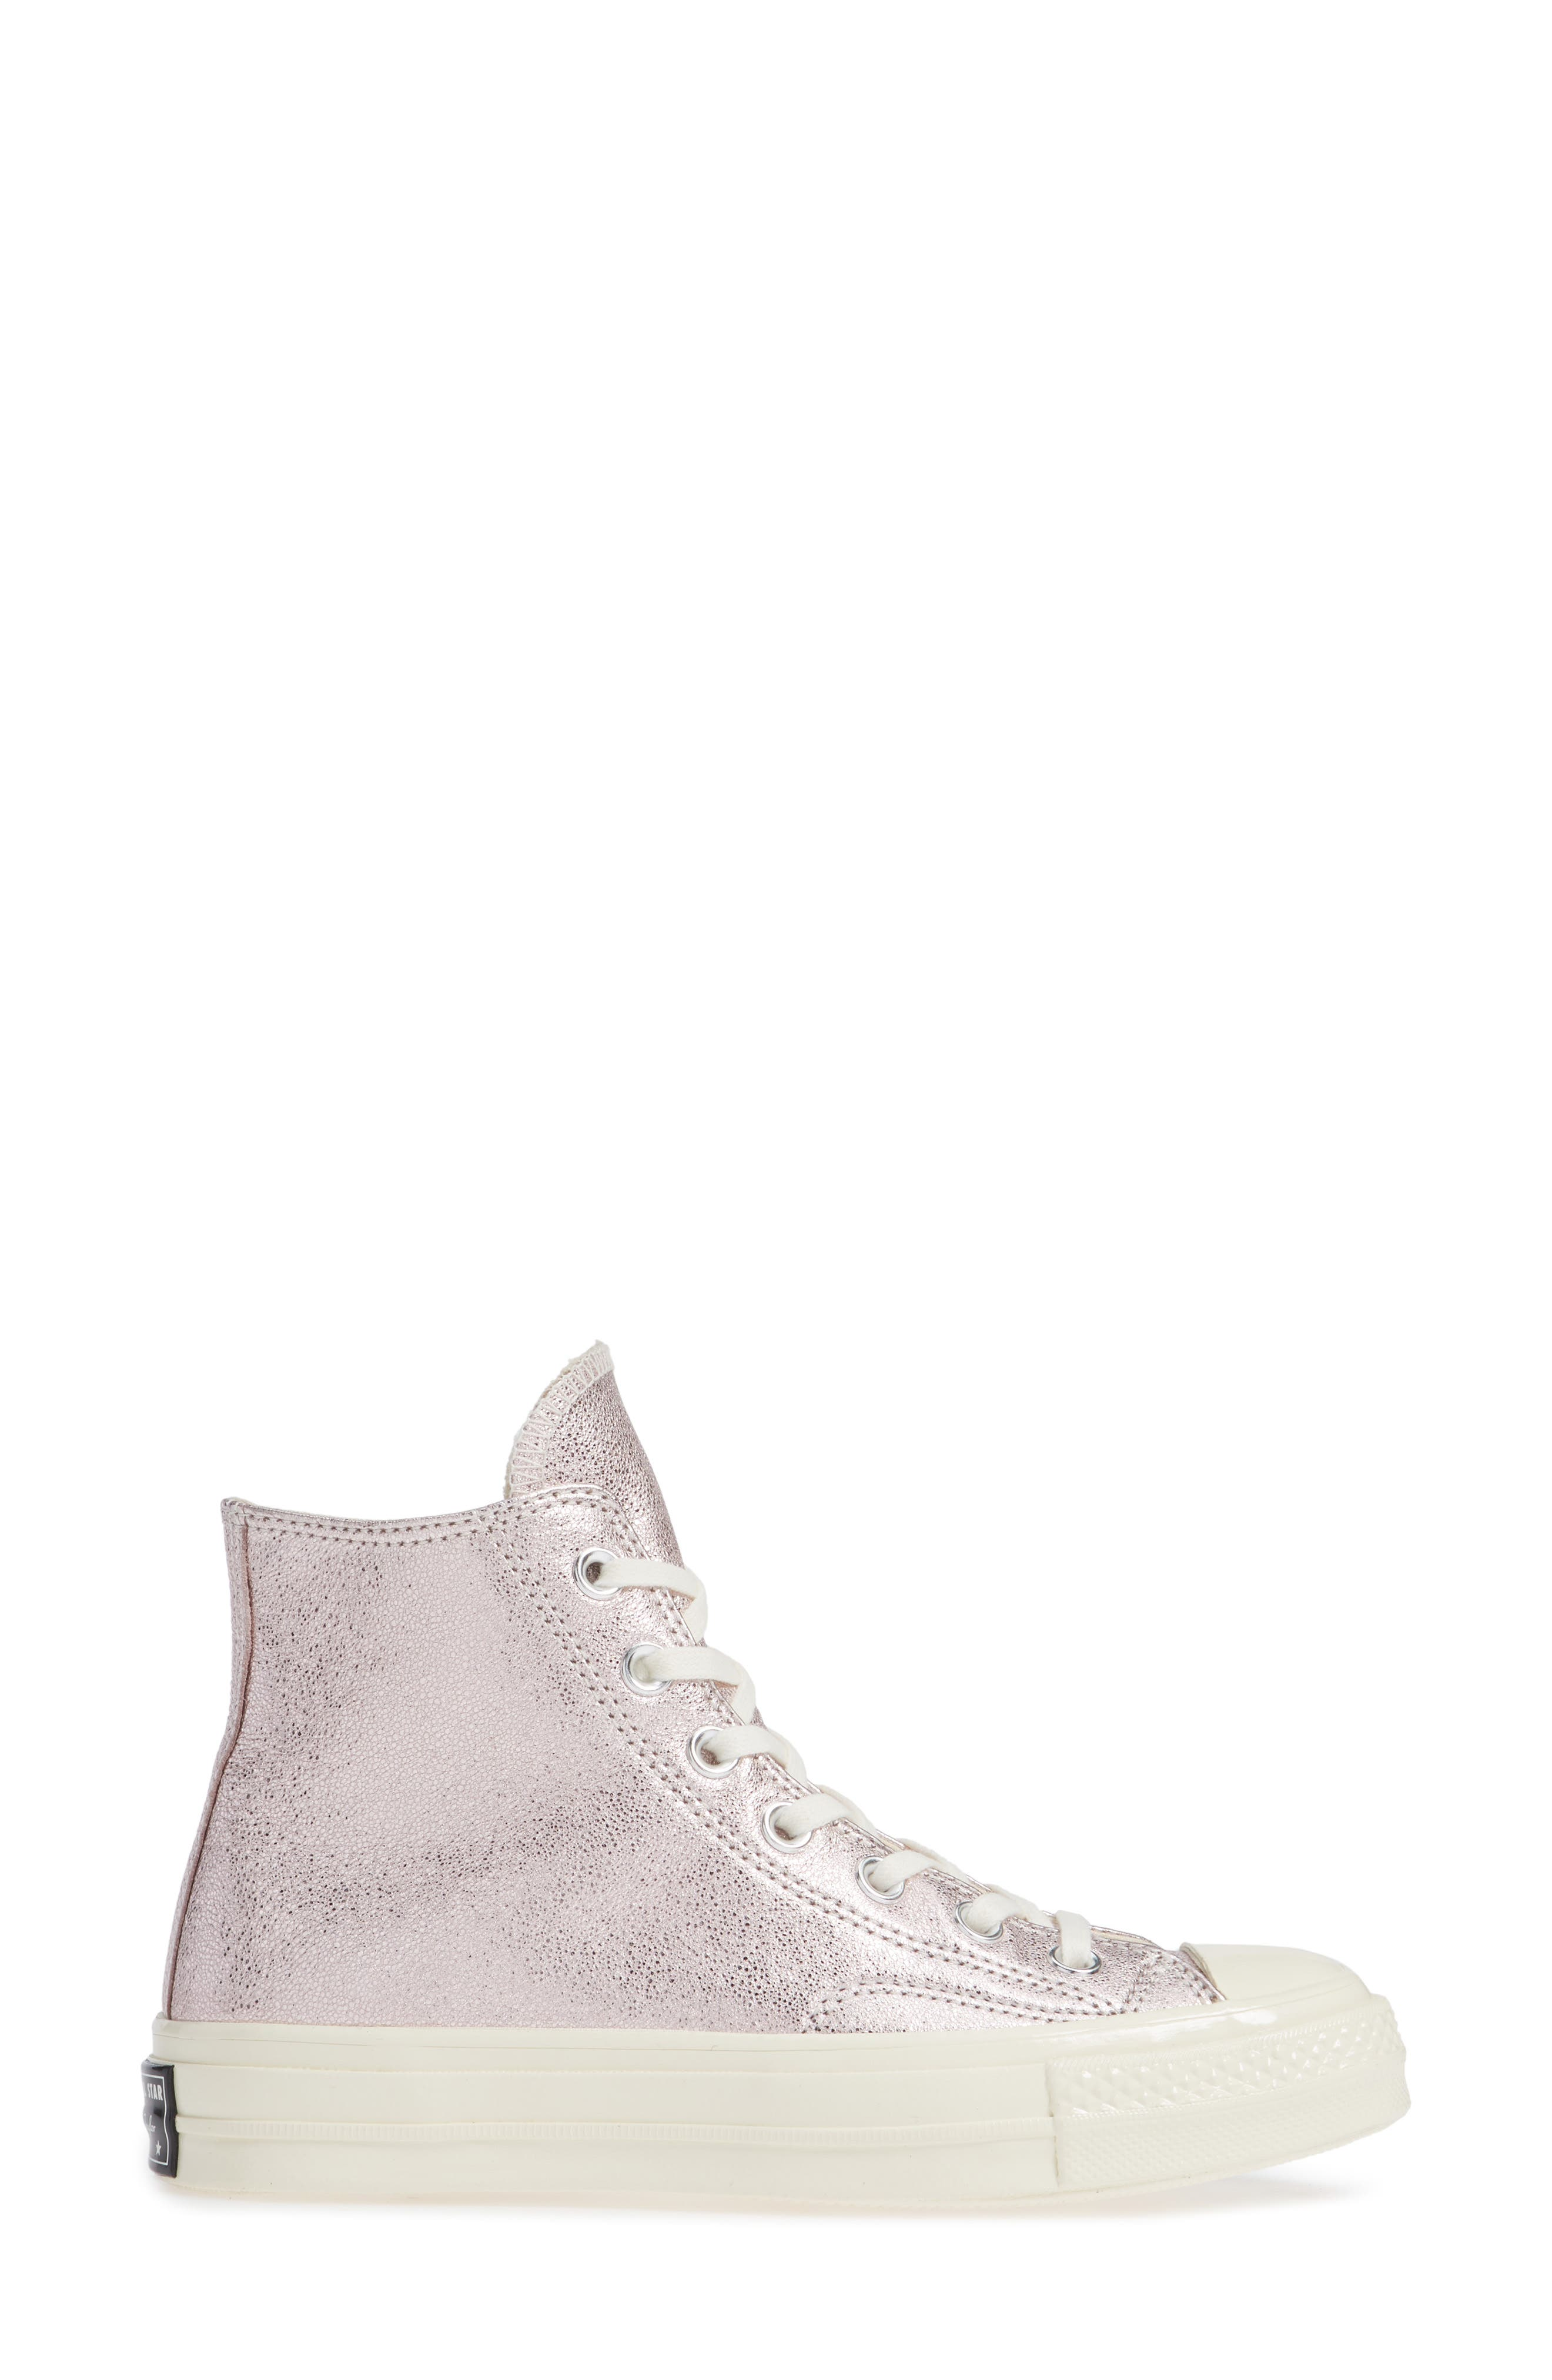 Chuck Taylor<sup>®</sup> All Star<sup>®</sup> Heavy Metal 70 High Top Sneaker,                             Alternate thumbnail 8, color,